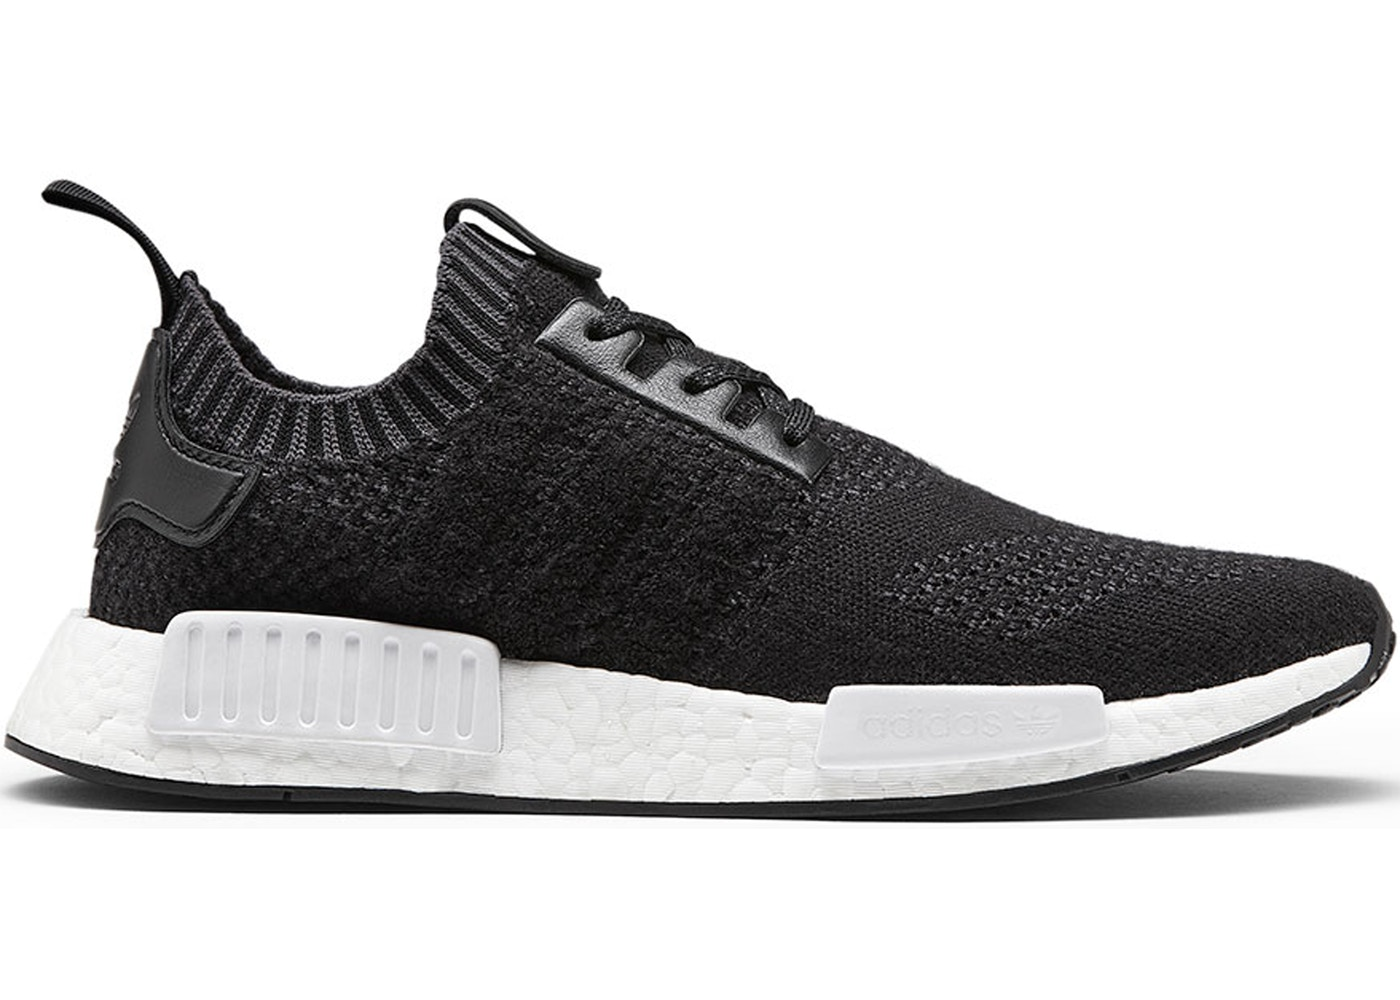 Adidas Originals Black X A Ma Maniere X Invincible Nmd R1